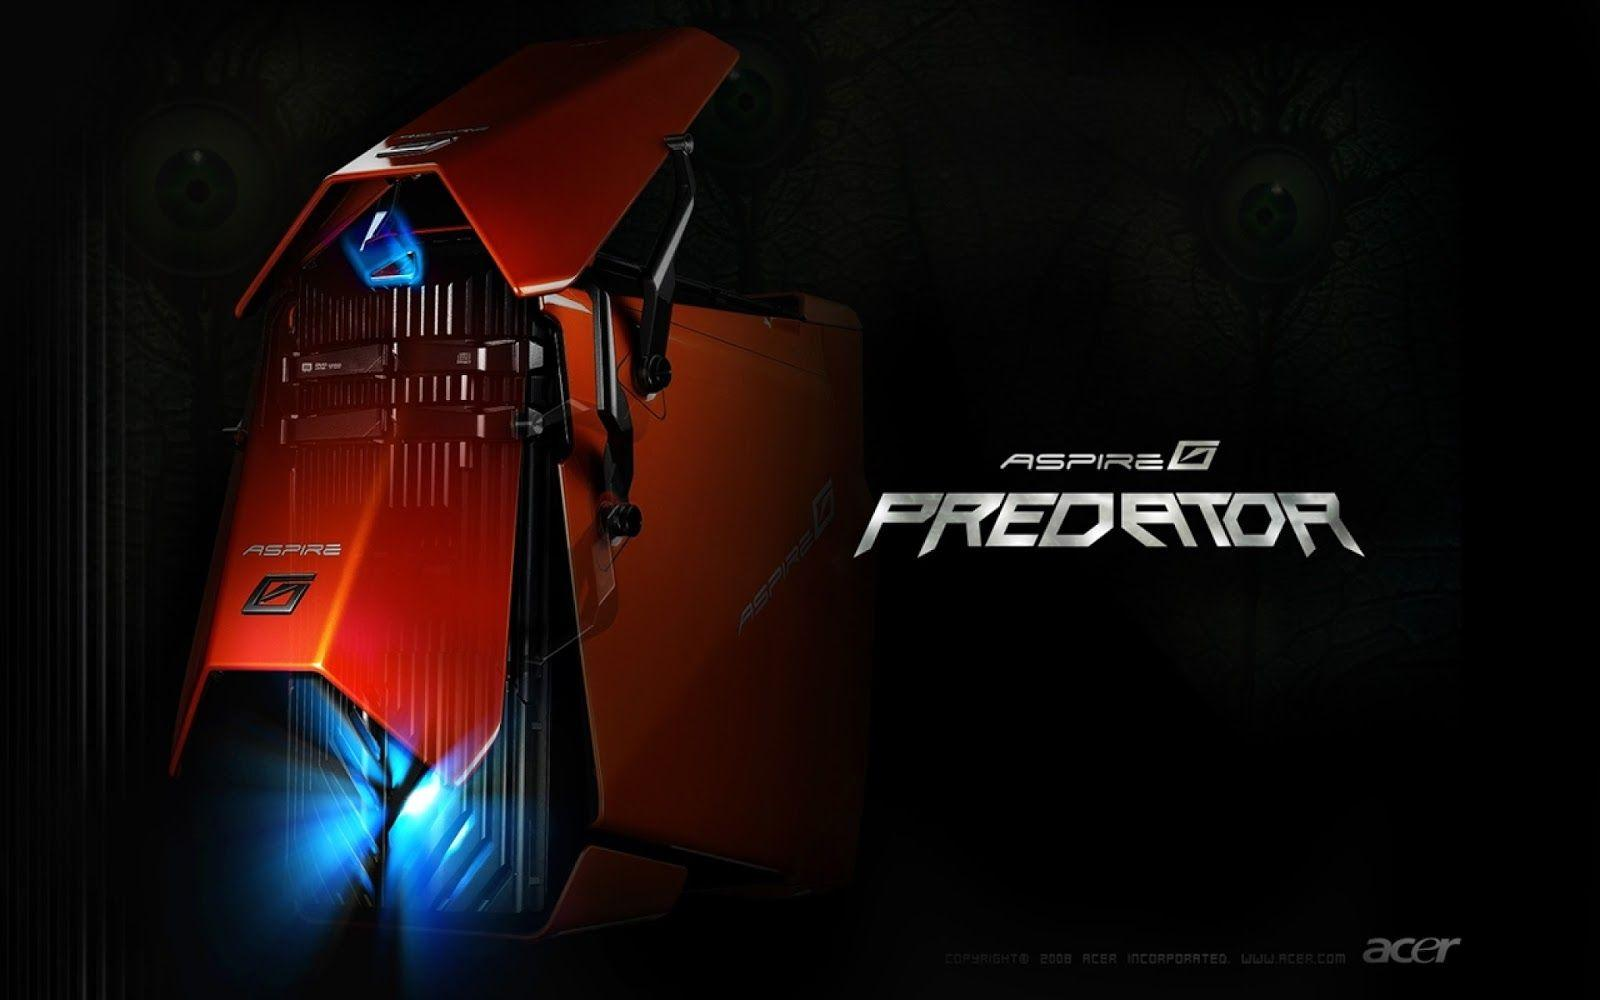 Predator Wallpapers for Computer